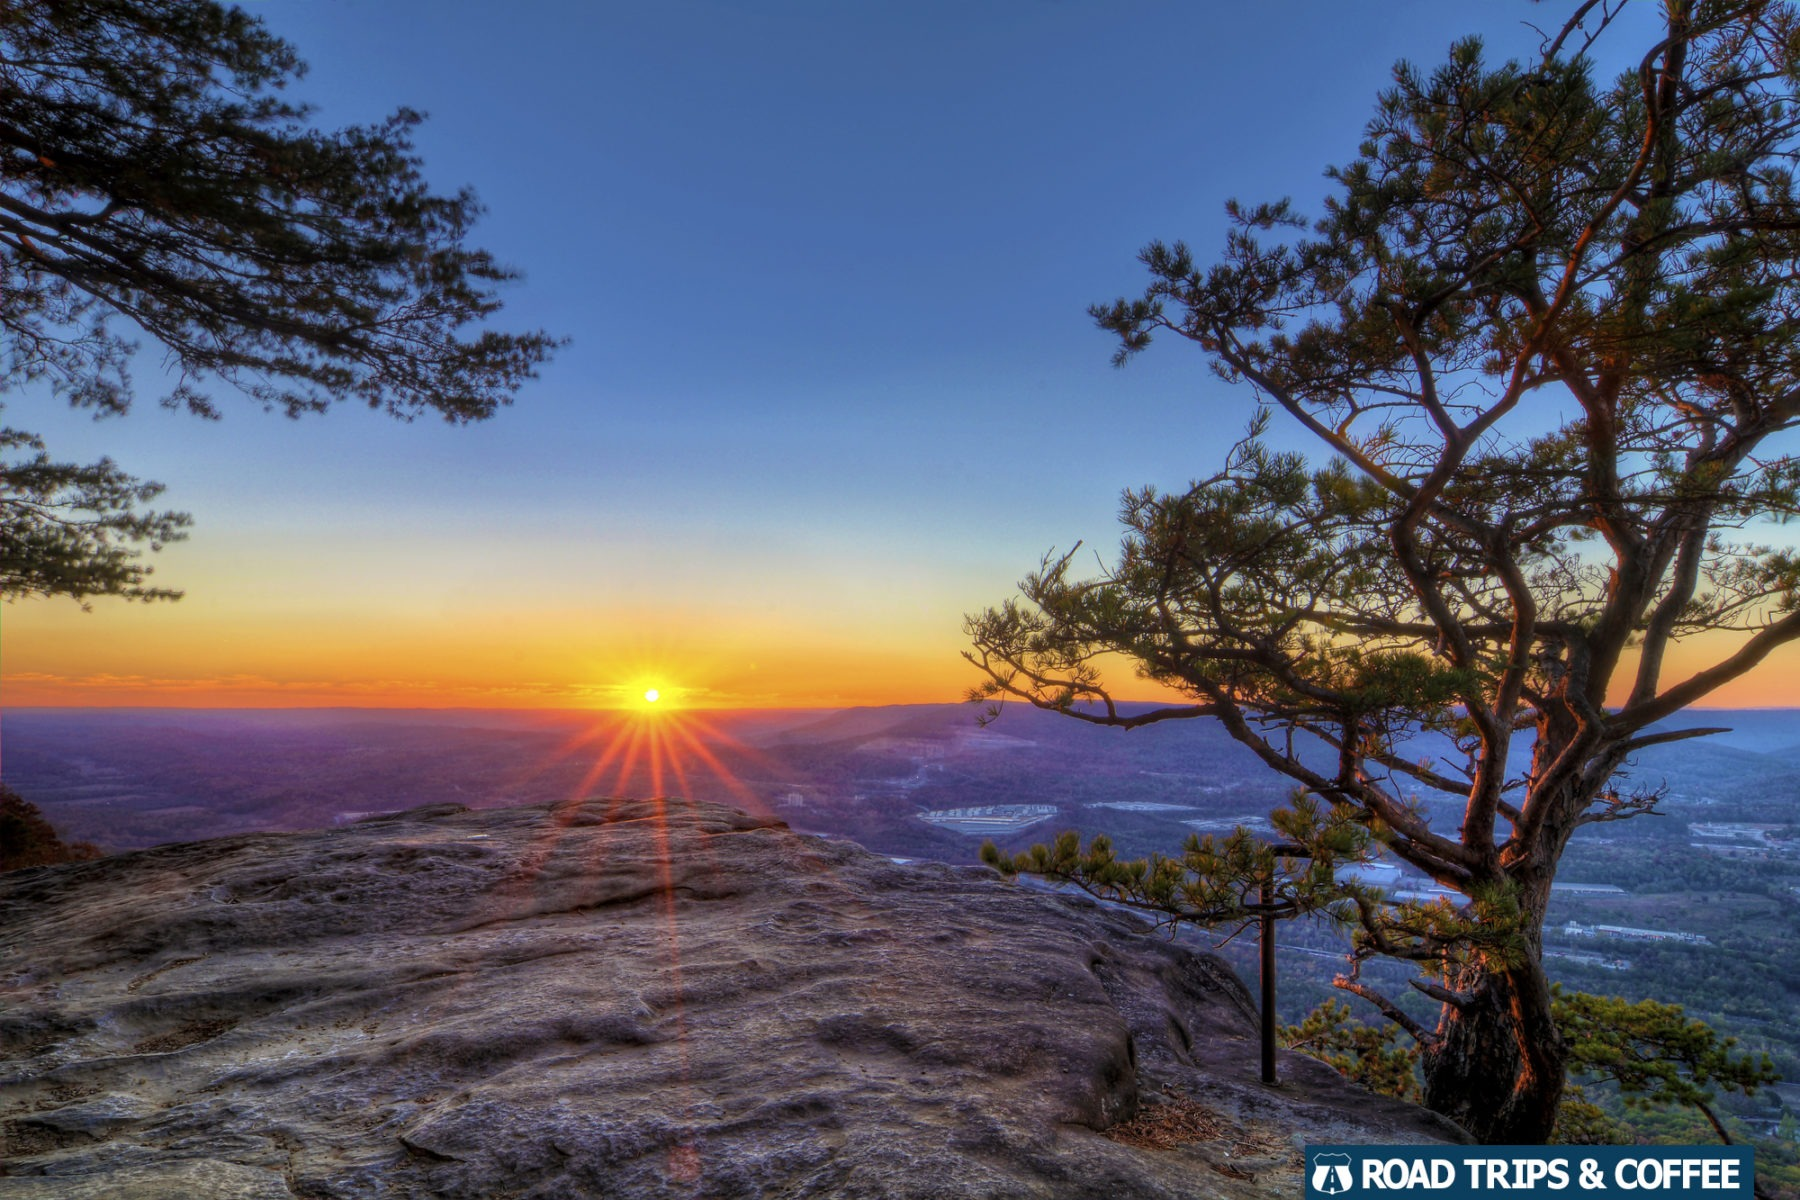 A warm sunset on a rocky outcropping at Sunset Rock on Lookout Mountain Chattanooga, Tennessee